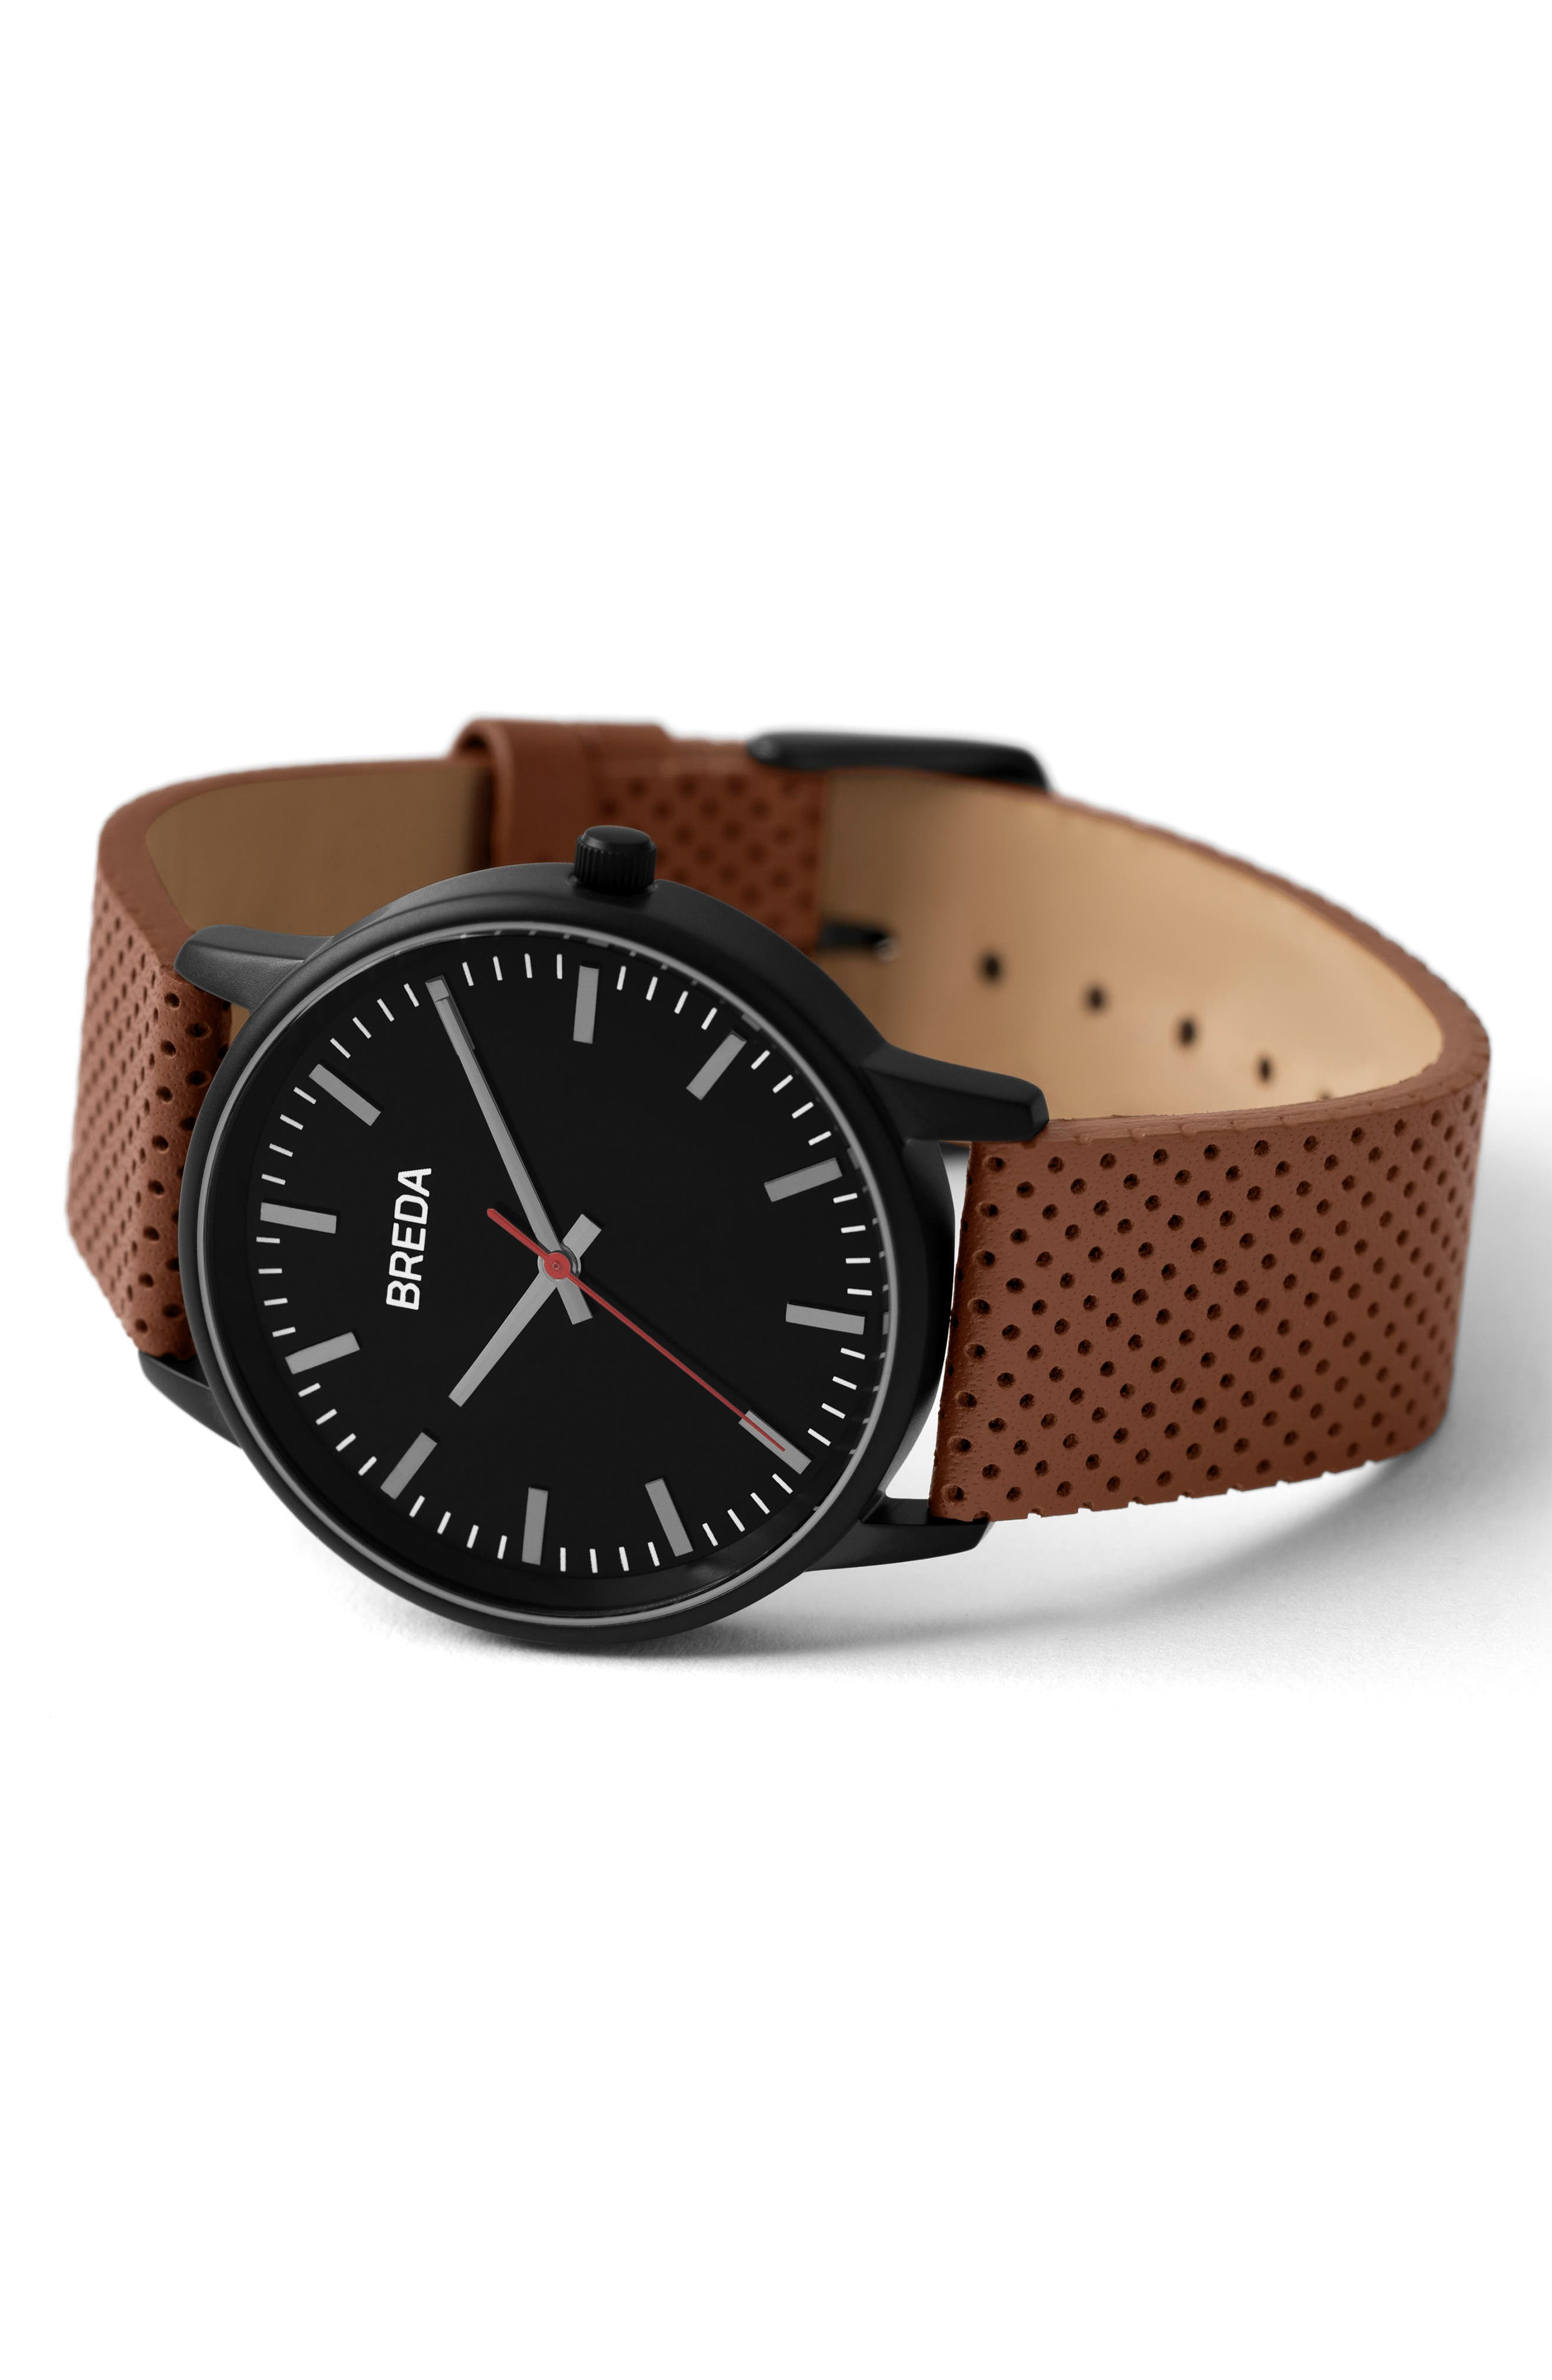 Zapf Round Perforated Leather Strap Watch, 39mm,                             Alternate thumbnail 3, color,                             Black/ Brown